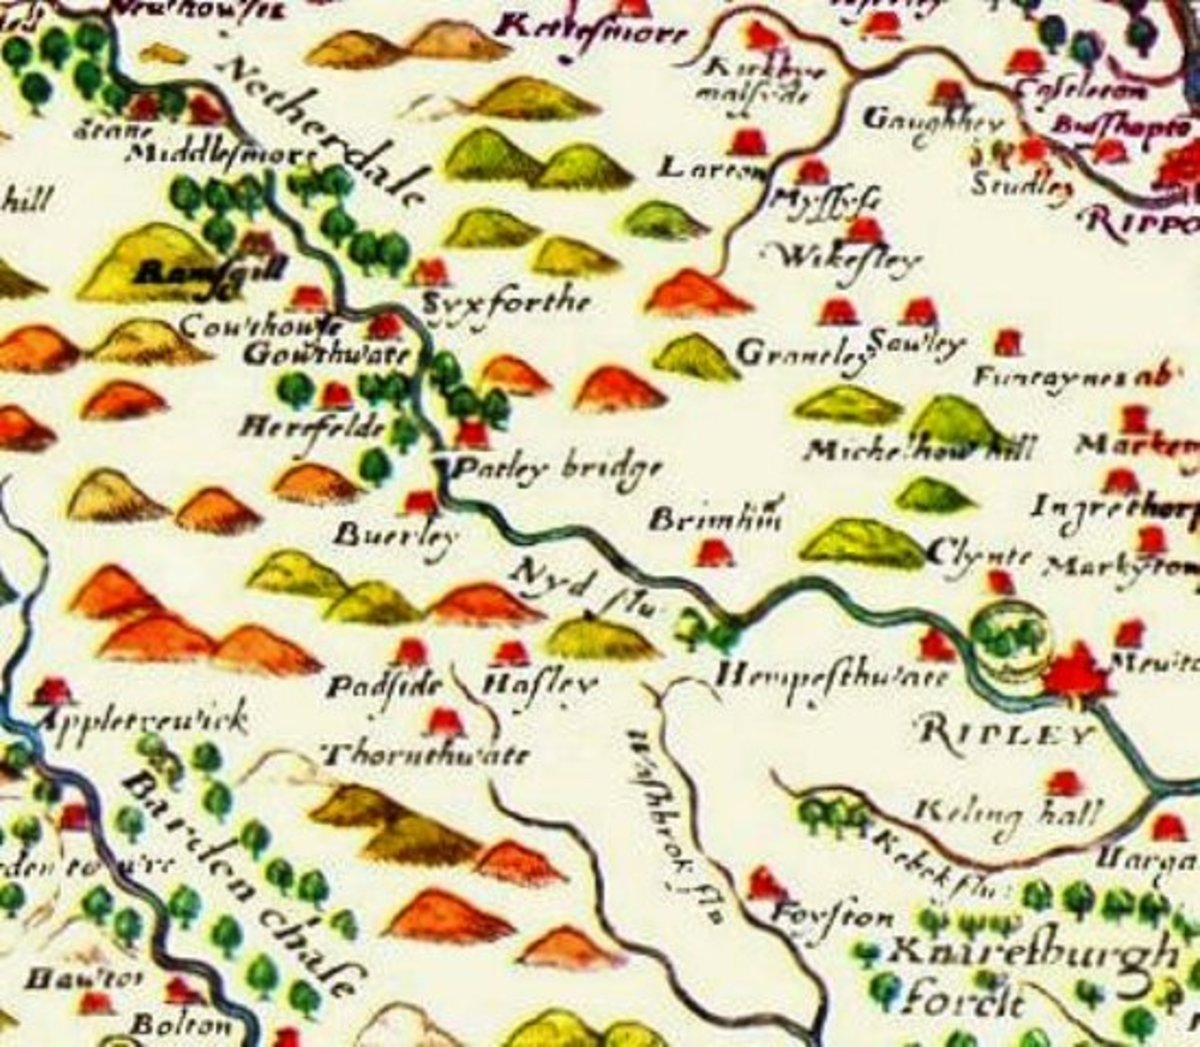 Late Tudor Saxton 1577 map of Nidderdale marked as 'Netherdale', with Pateley Bridge at the centre as the point where the Nidd changes character from fast-flowing upland watercourse to something more sedate